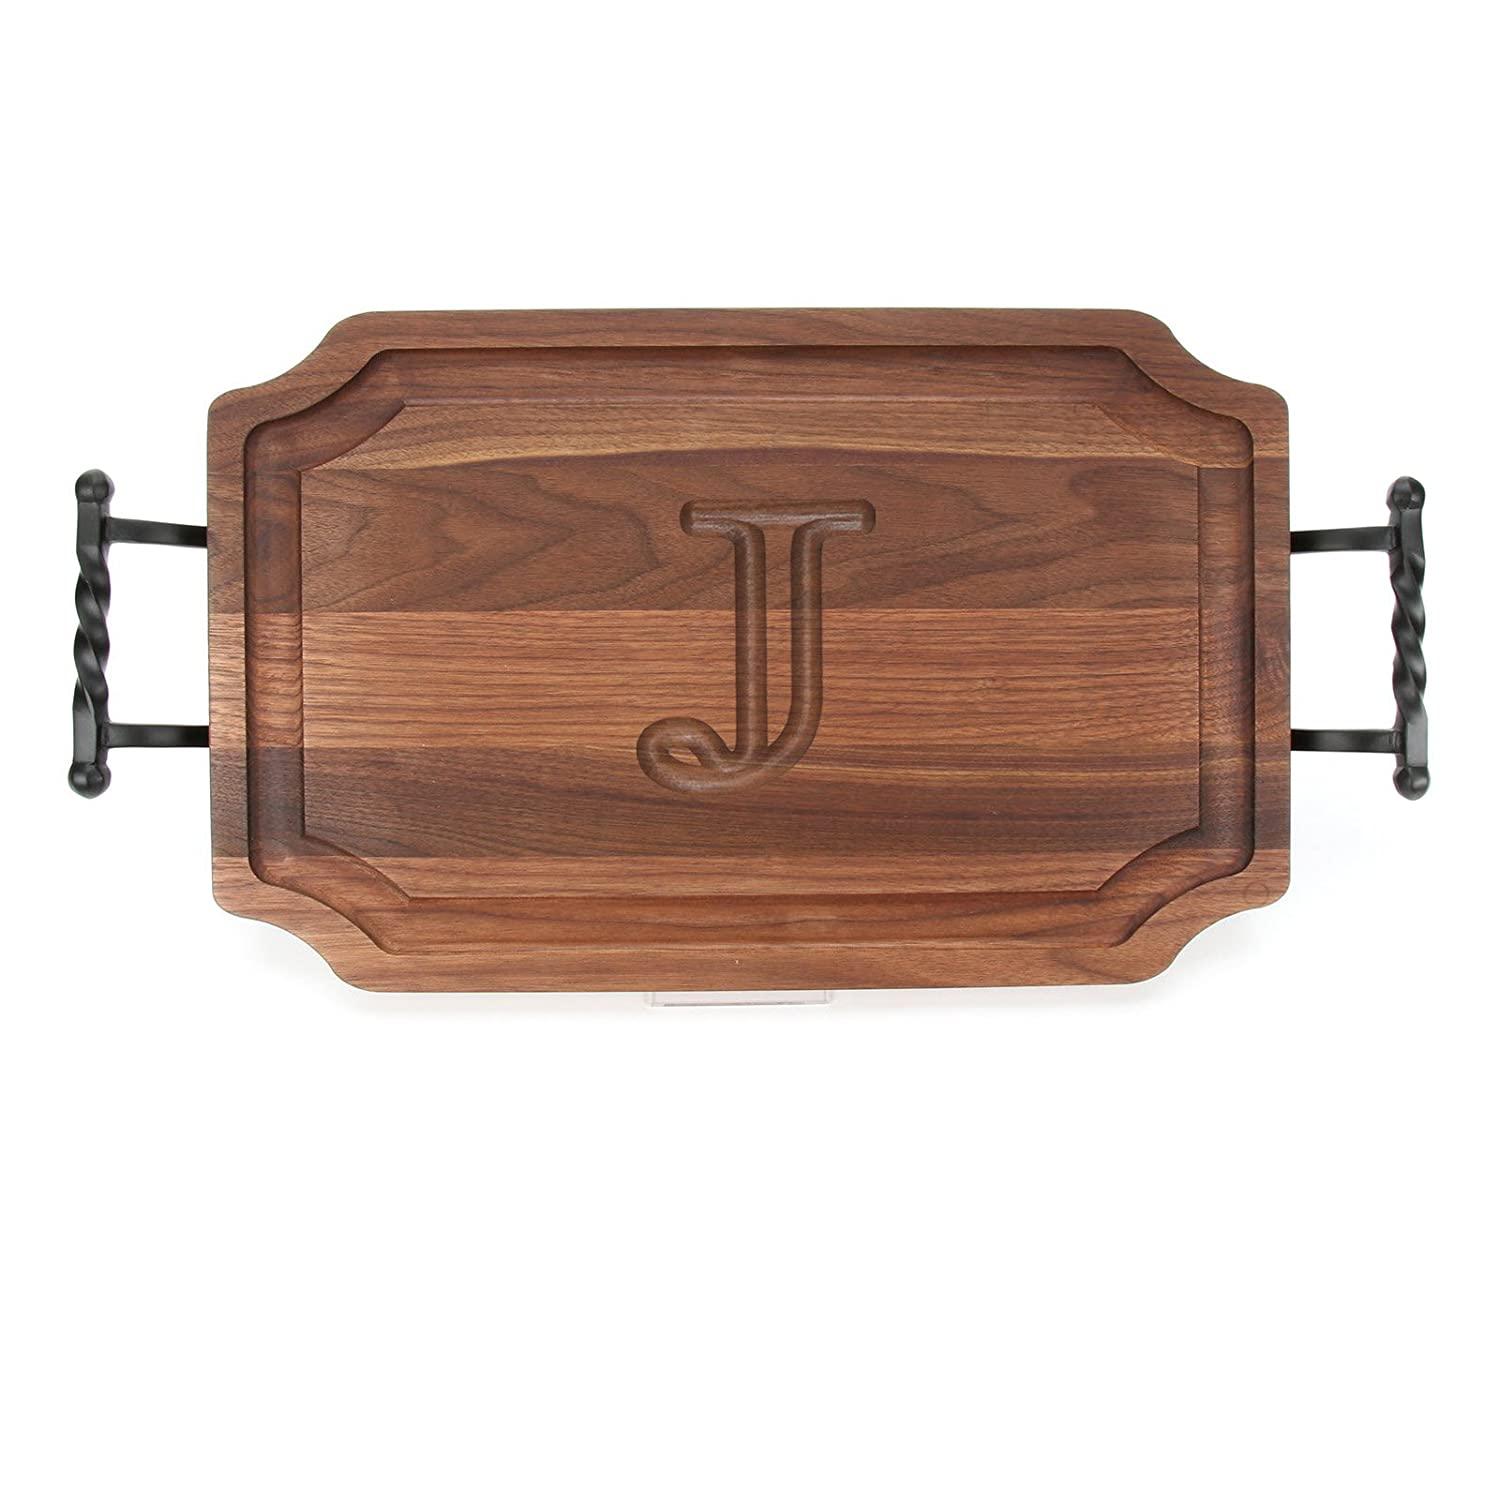 BigWood Boards W320-LTWB-W Carving Board with Large Twisted Ball Handle with Scalloped Corners, 15-Inch by 24-Inch by 1.25-Inch, Monogrammed'W', Walnut